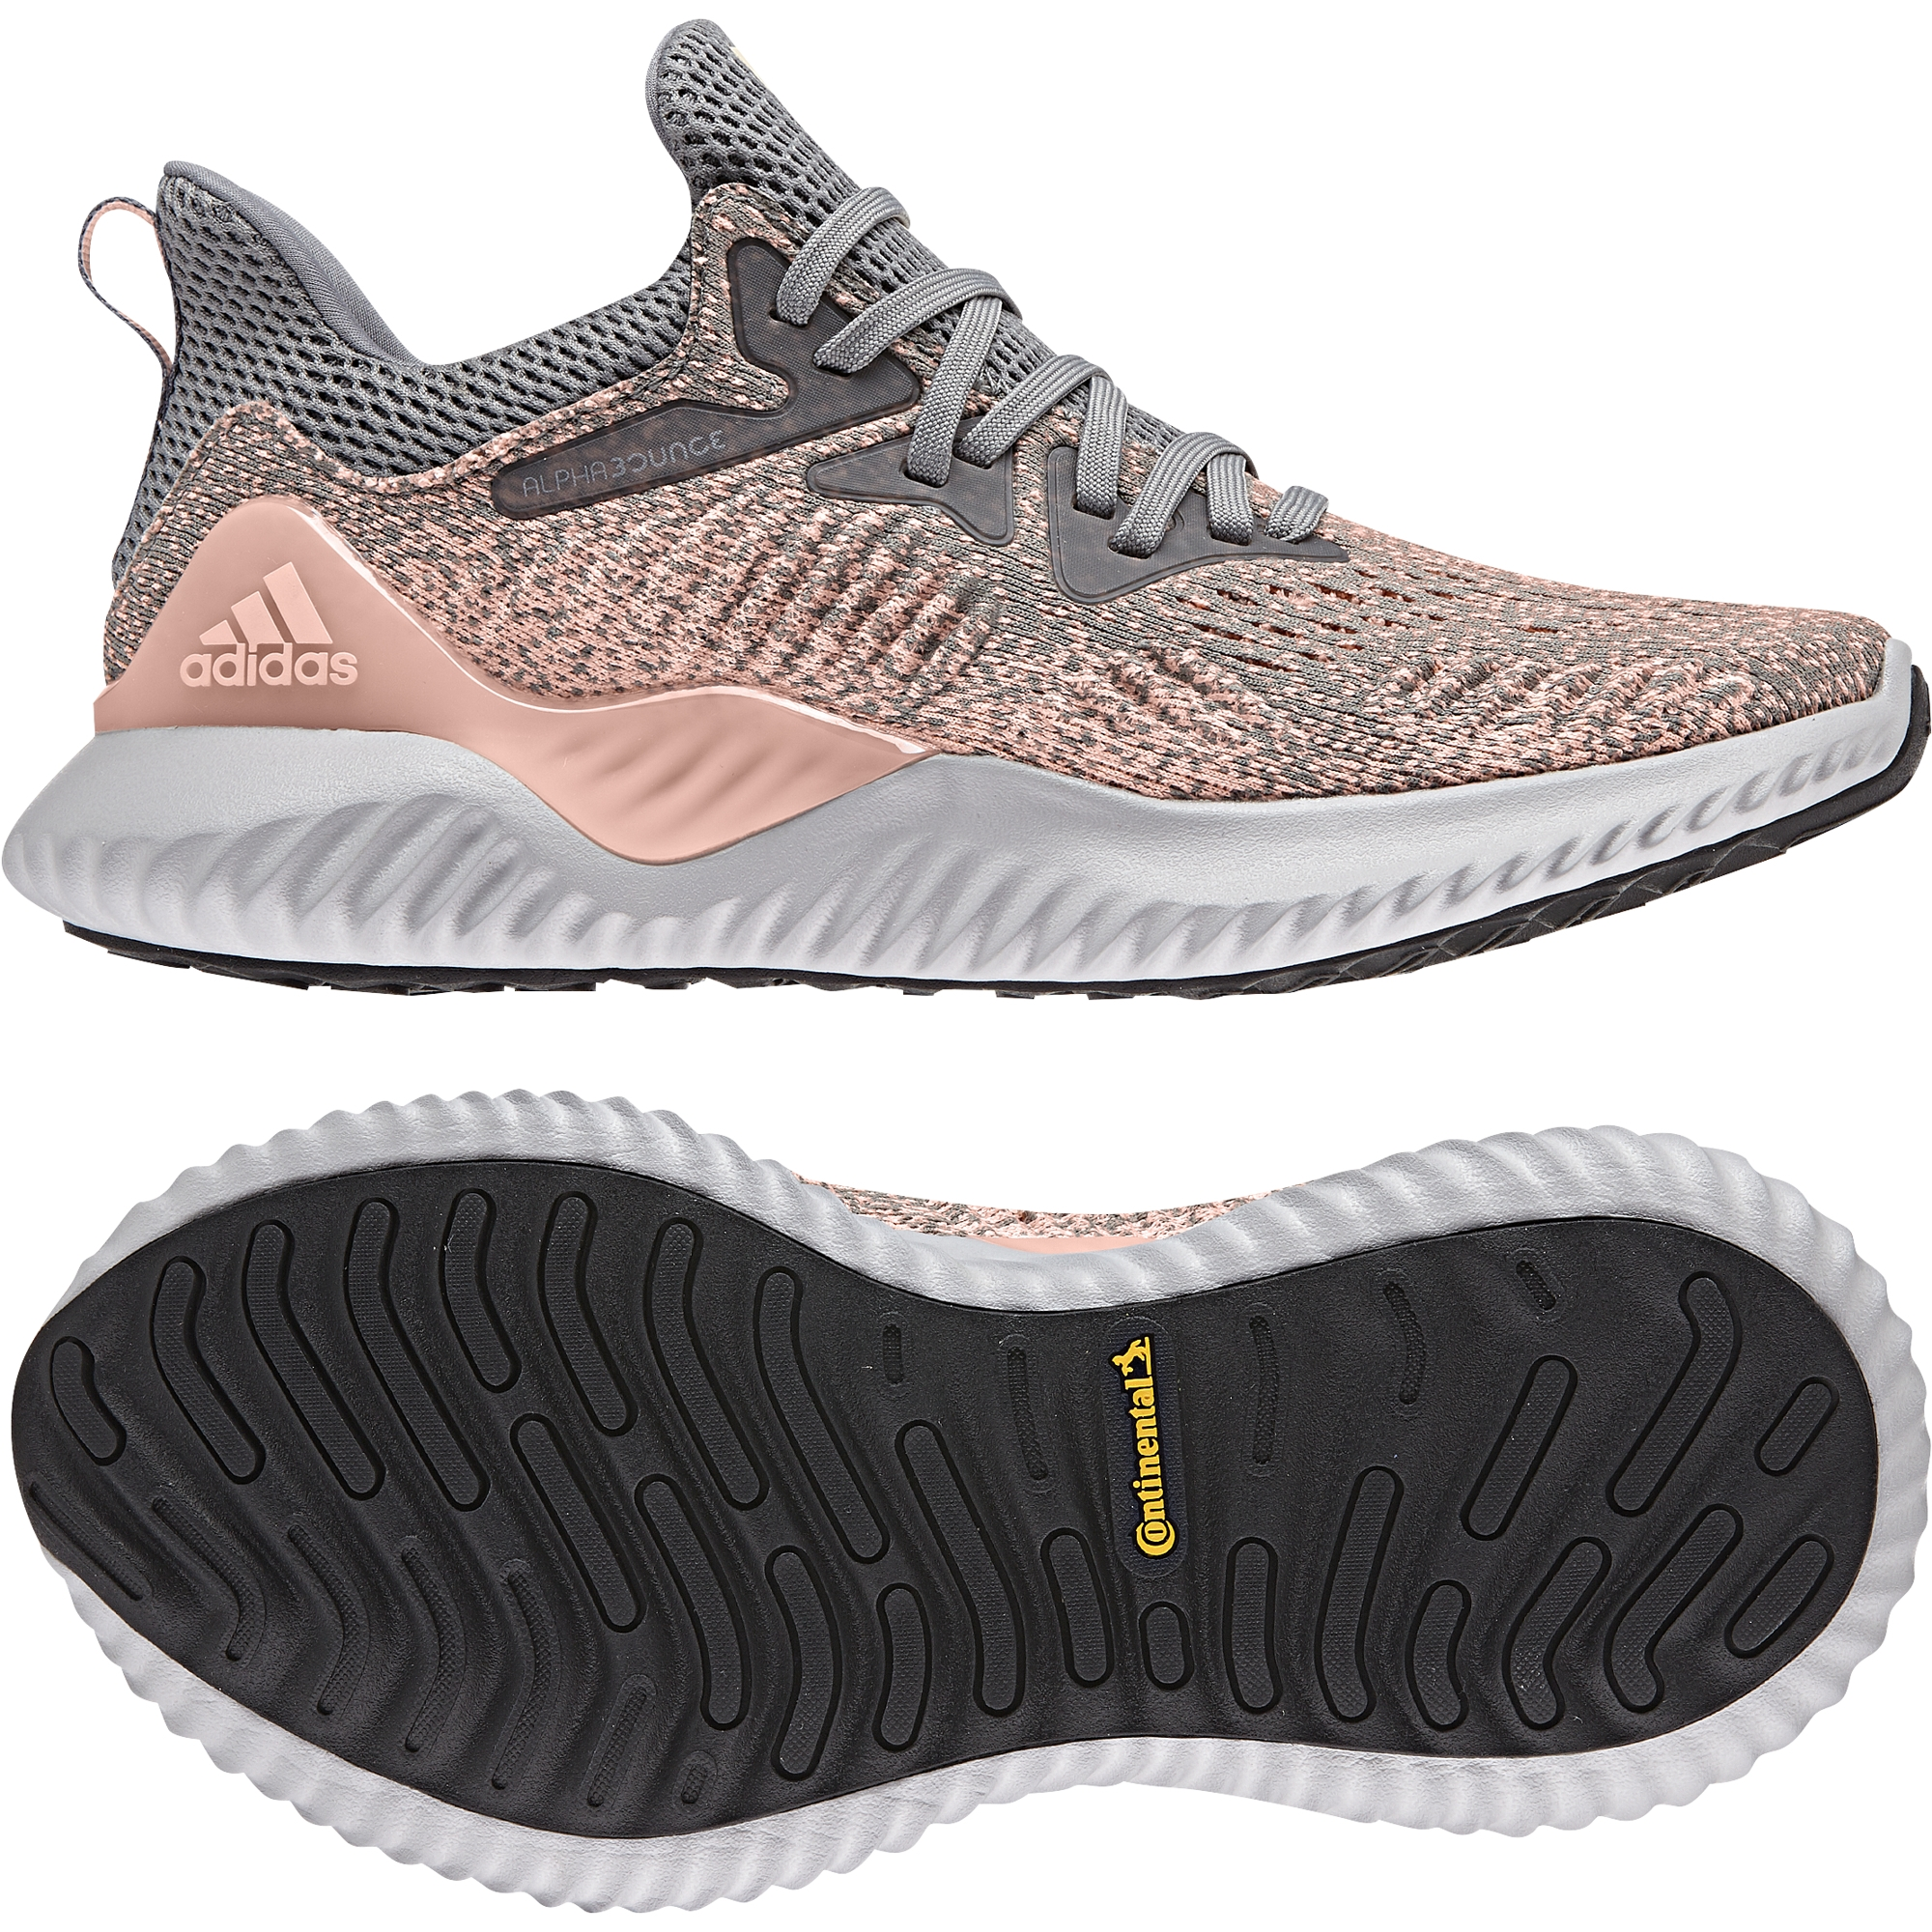 Chaussures femme adidas Alphabounce Beyond